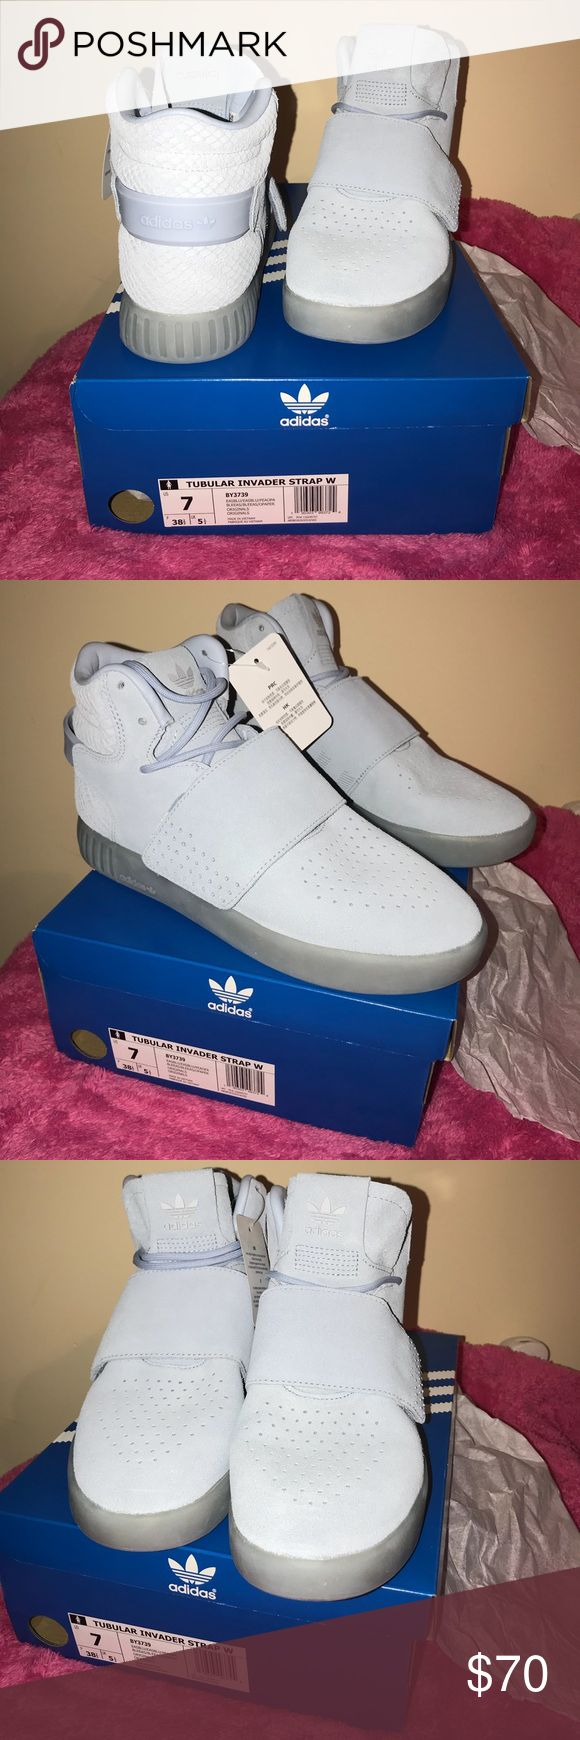 Adidas Tubular Invader Strap Women Sneakers Women's 🚺 Adidas Suede Light Blue Strap Sneakers W/ Snake skin pattern  NWT - (New With Tags)  Size: US•7             F• 38 2/3           UK• 5 1/2  🔆Size wise - fits like a 9 ‼️          Made in Vietnam 🇻🇳 adidas Shoes Sneakers